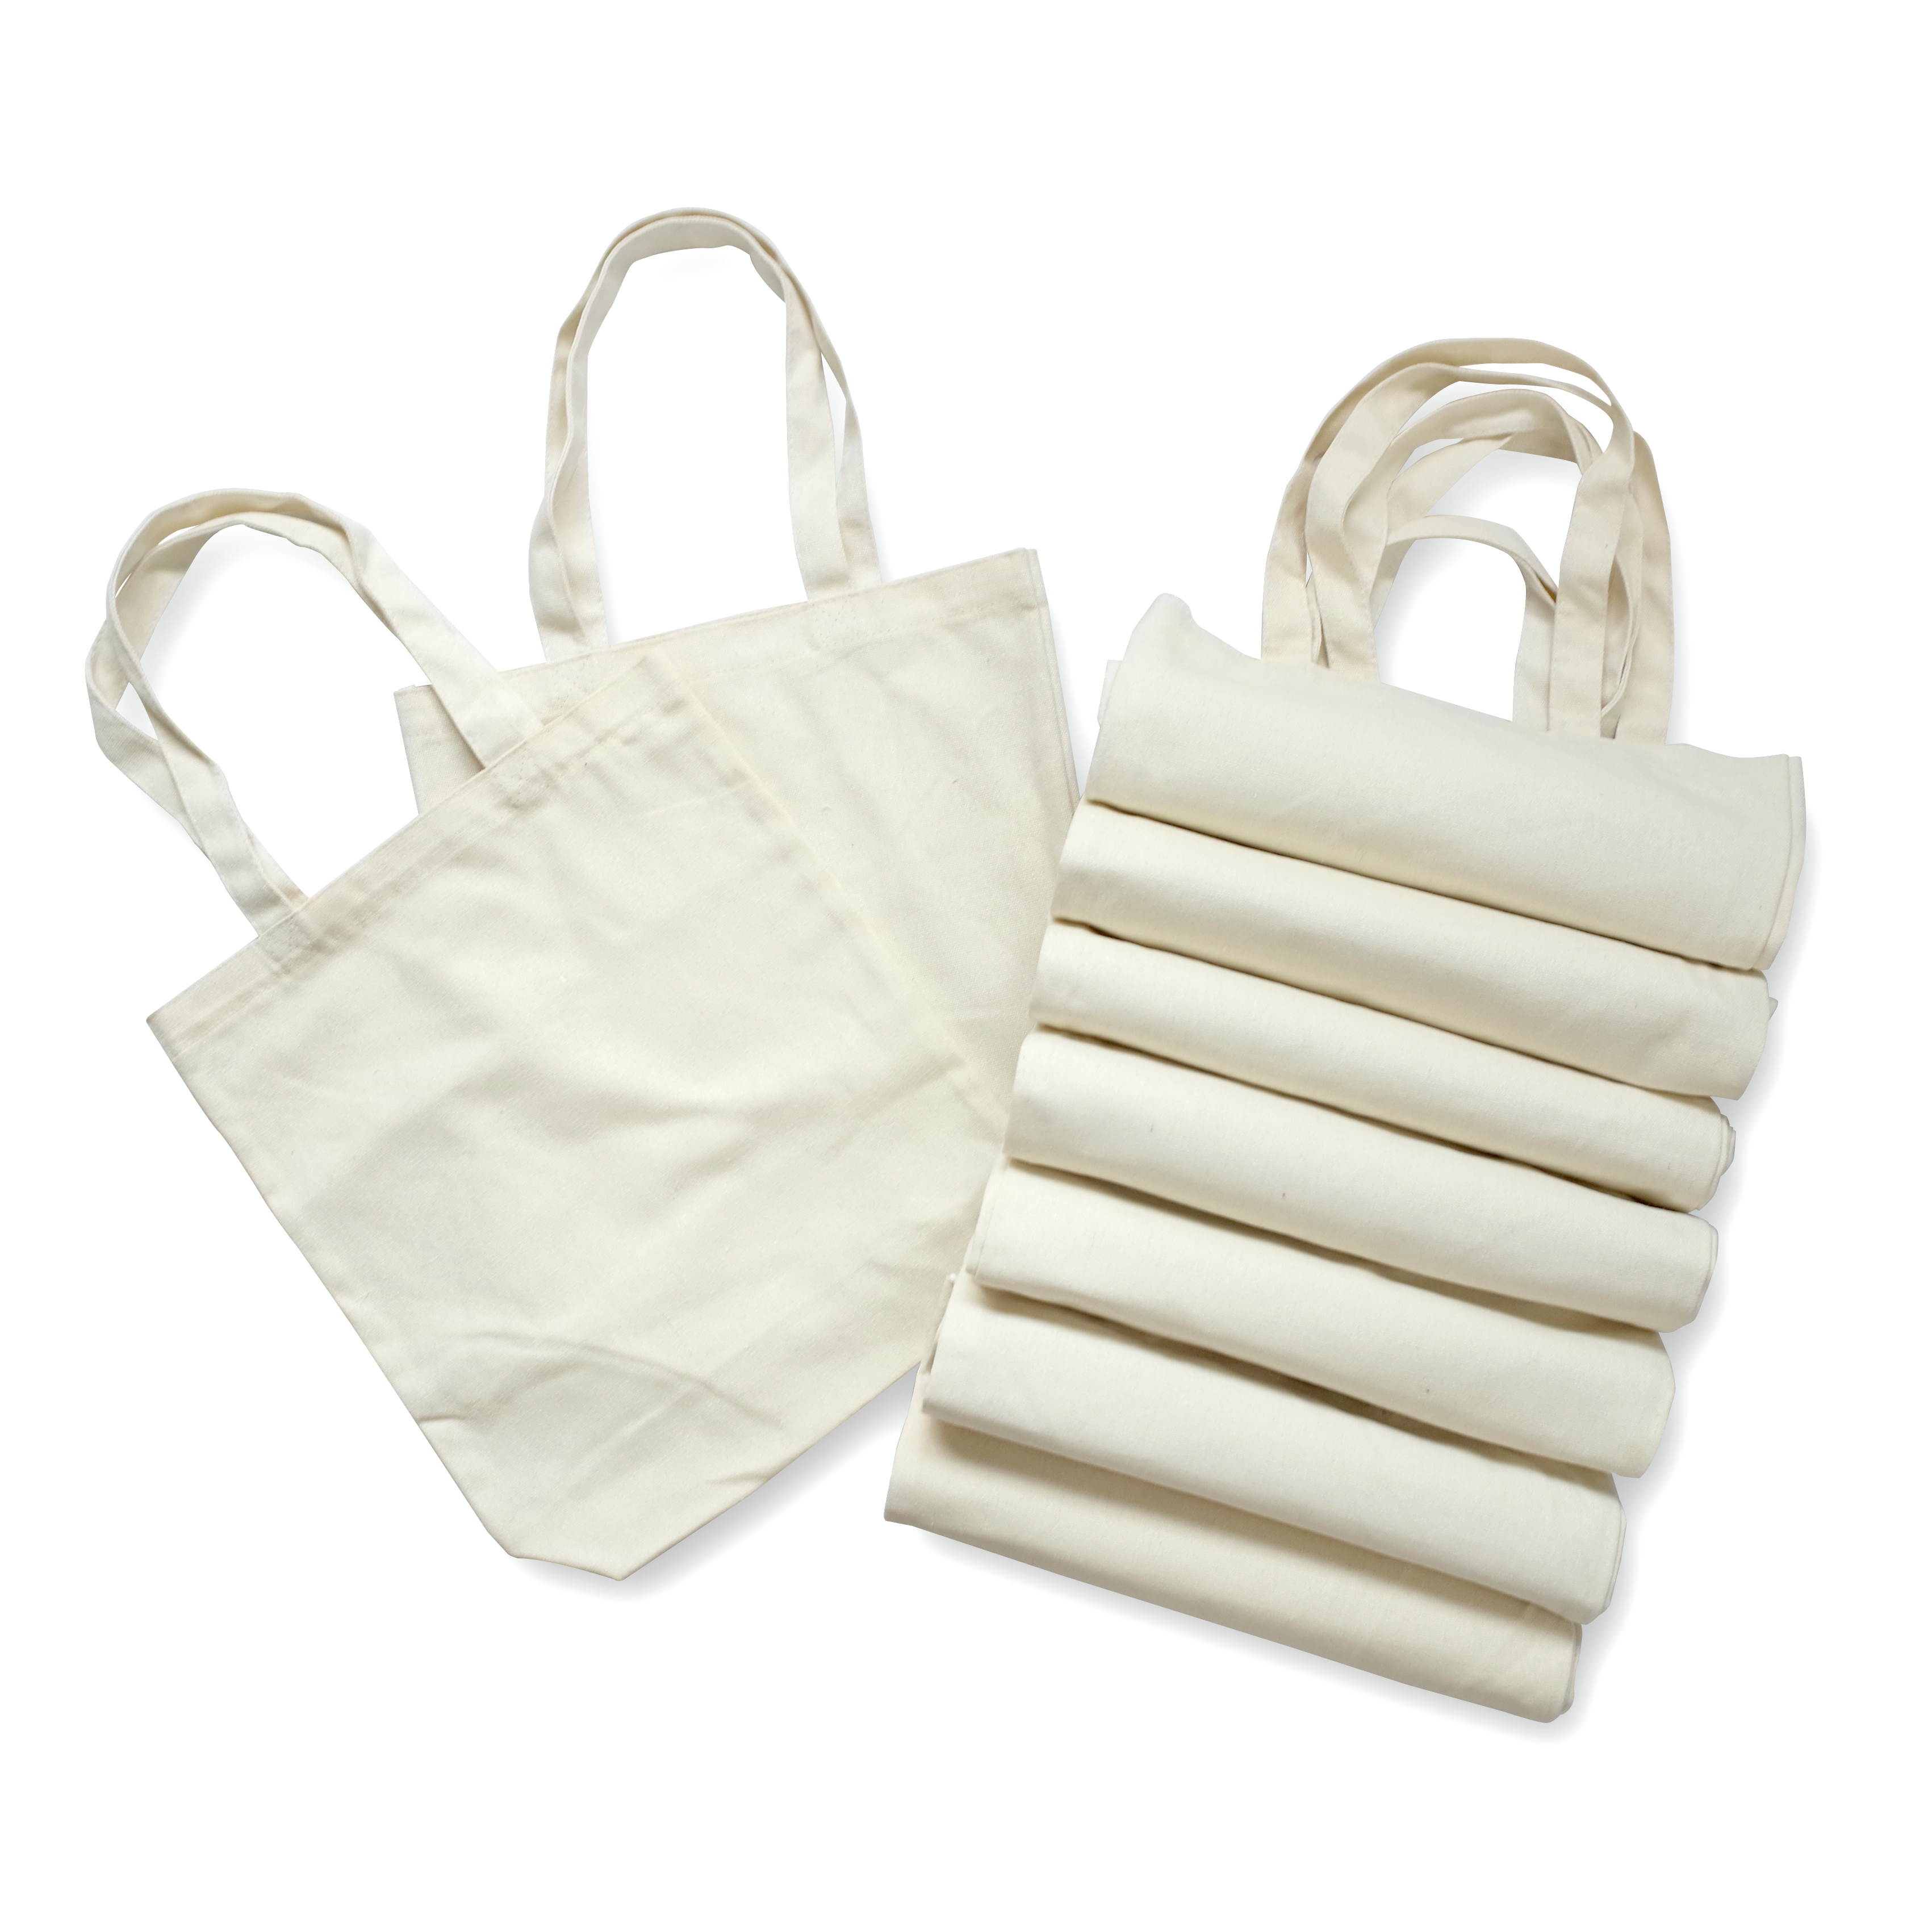 【In-stock】Plain Canvas Tote Bag